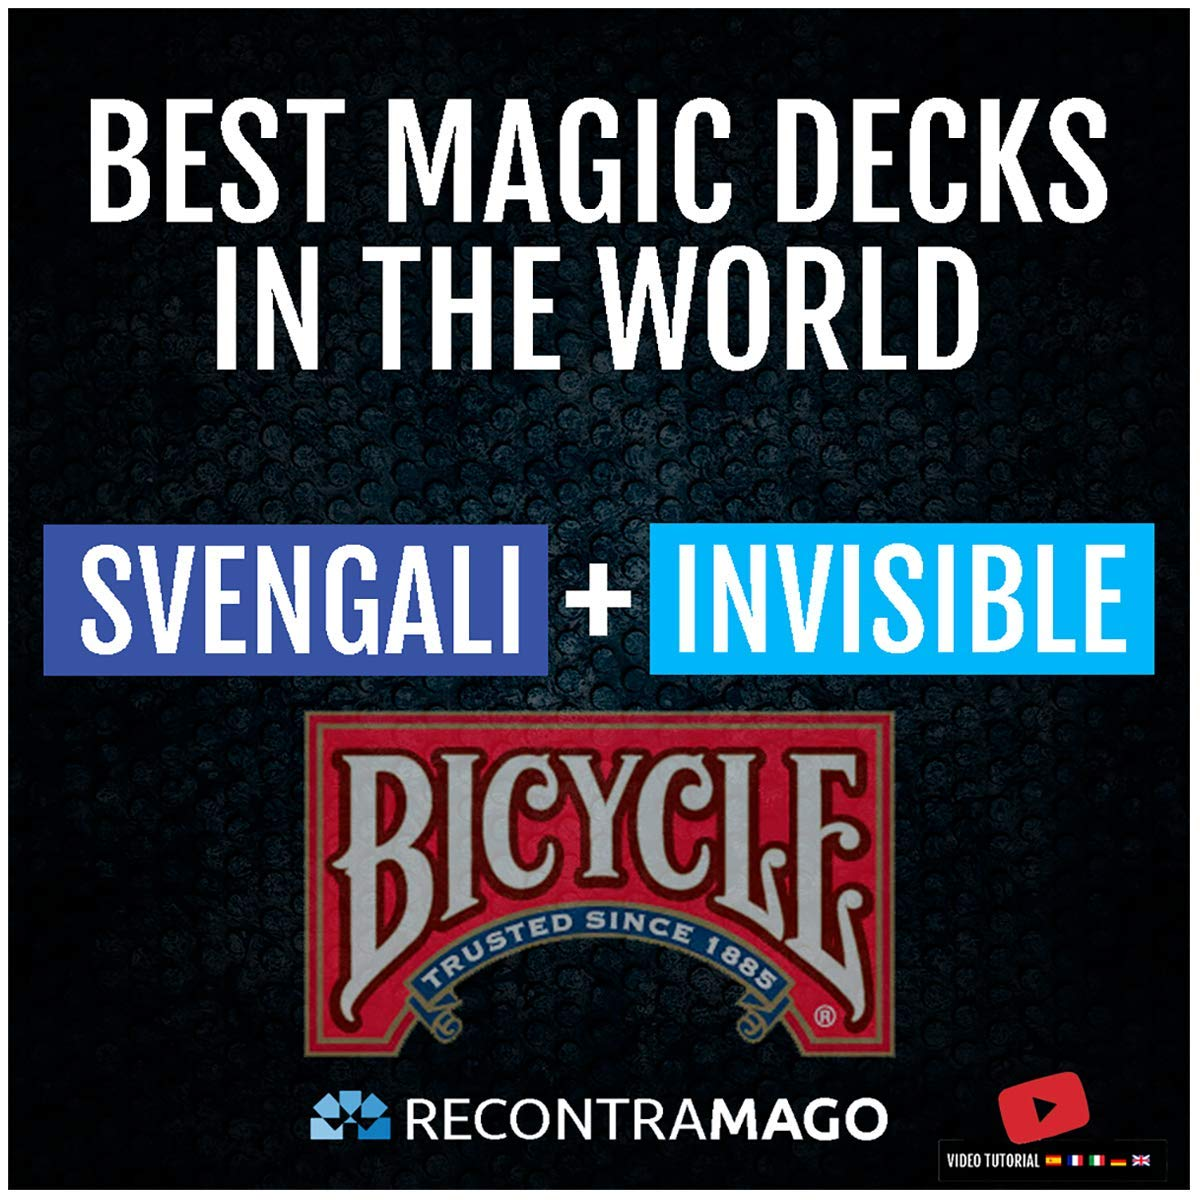 RecontraMago Magia Bicycle - Las Top Barajas Mágicas del Mundo Ahora en Cartas Bicycle - Trucos de Magia para niños y Adultos (Svengali + Invisible)